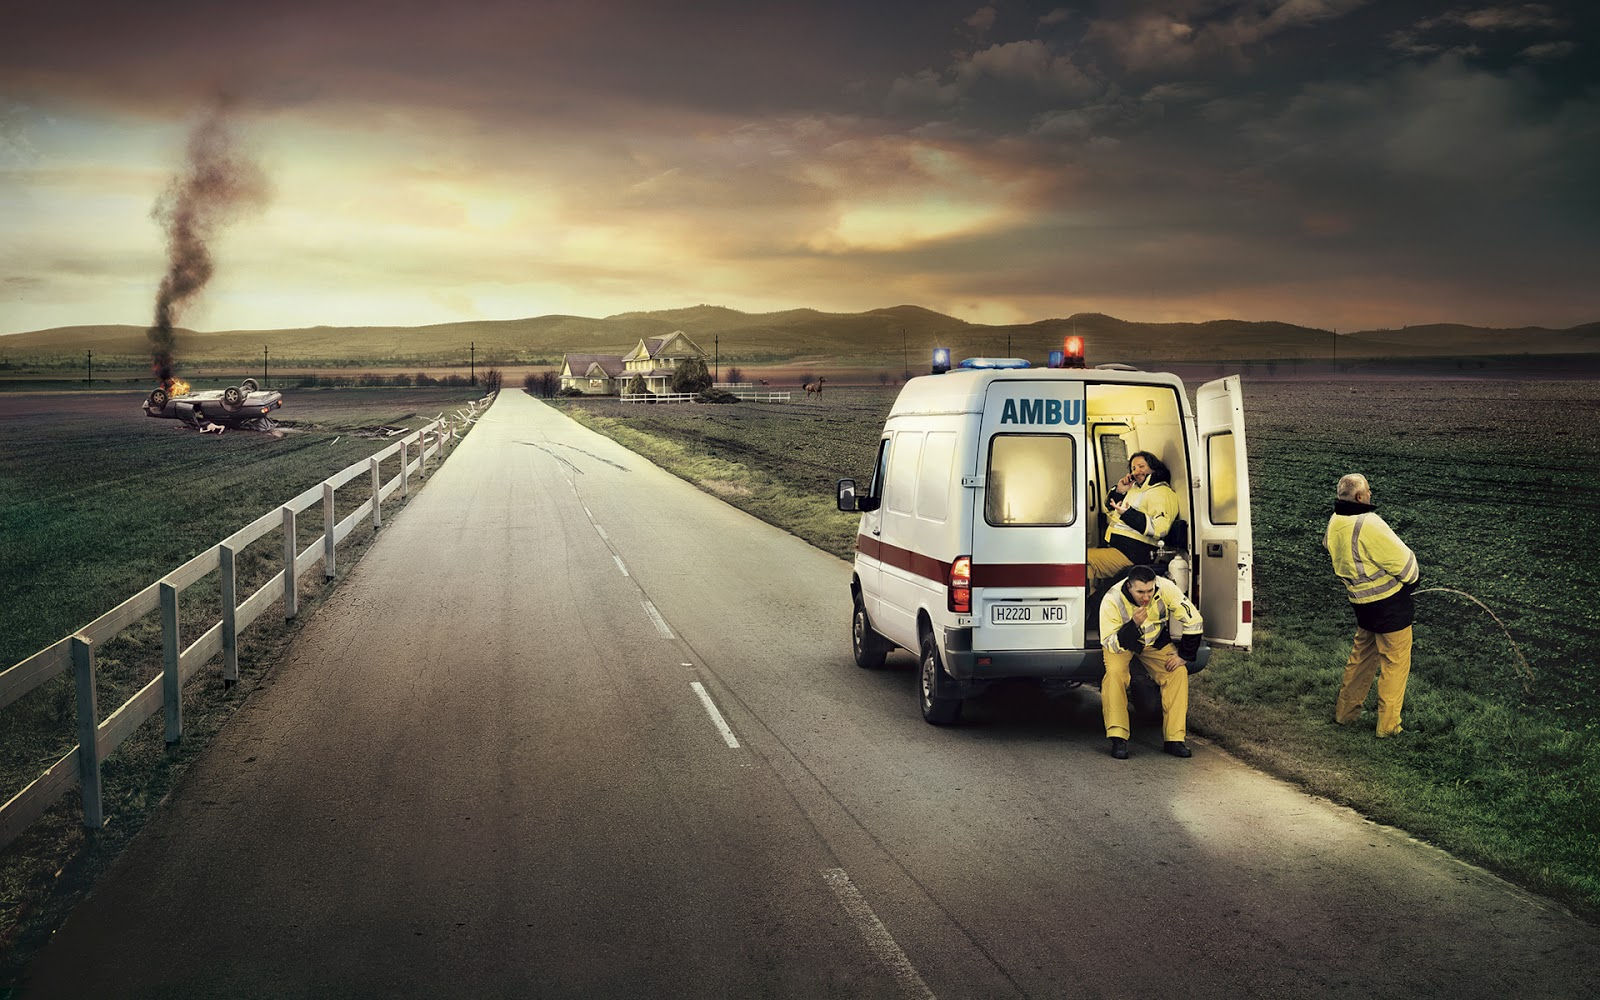 Must Seen 2015 Funny Ambulance Wallpaper